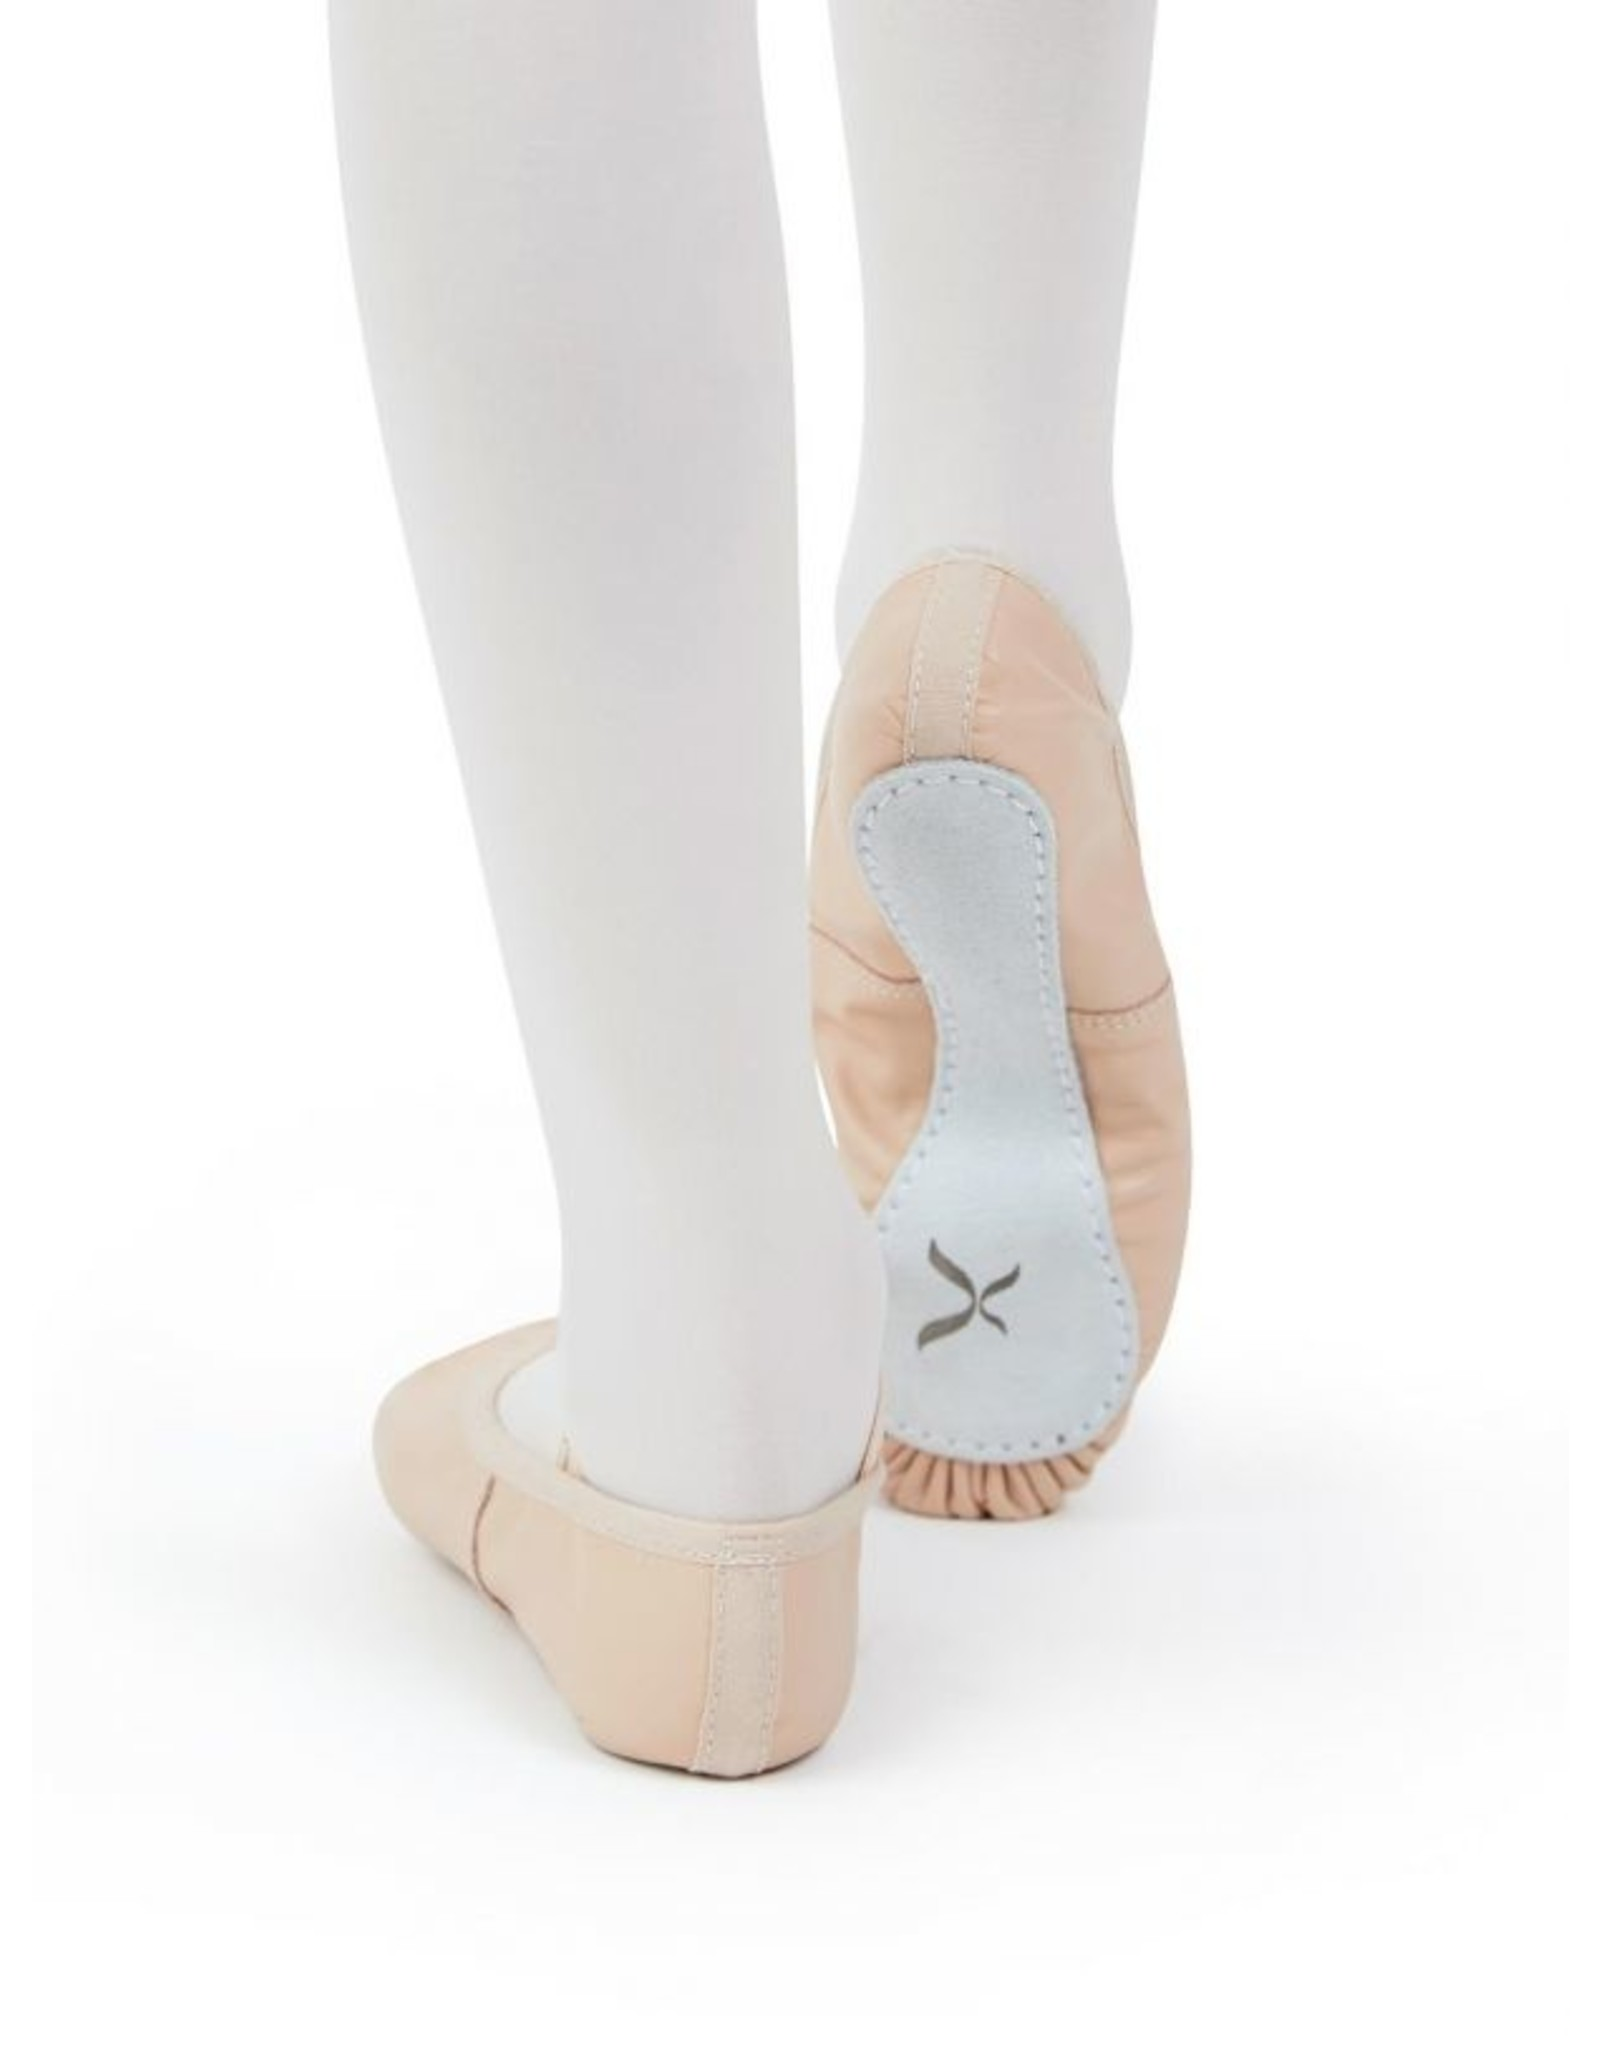 ADULT DAISY LEATHER FULL SOLE BALLET SLIPPER